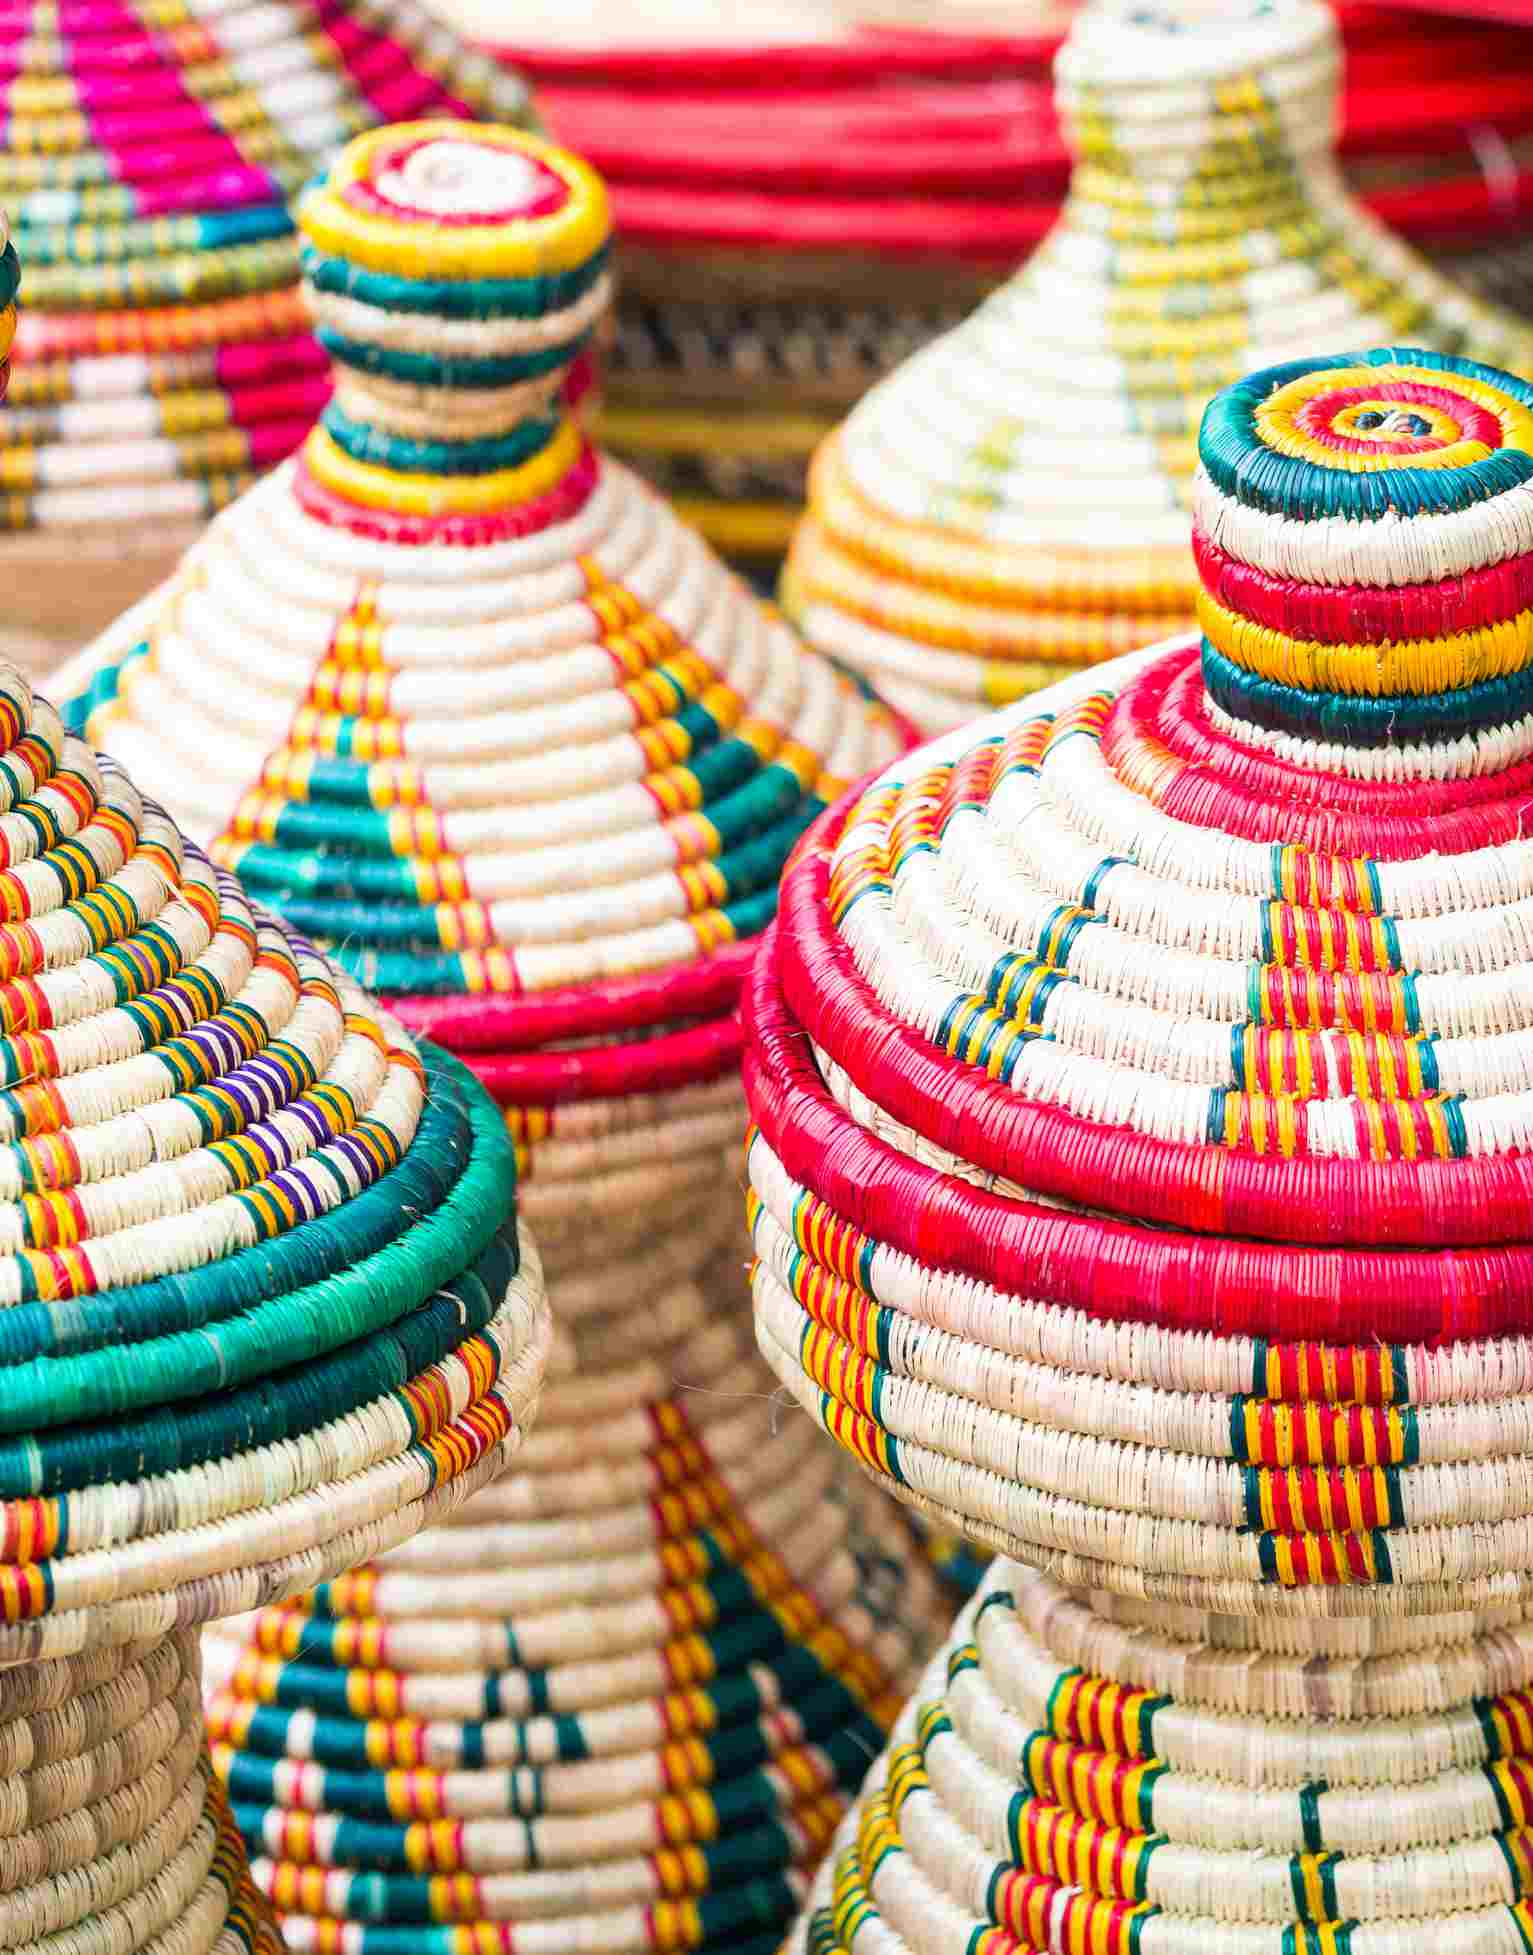 decorative baskets dried flowers small baskets country basket.htm woven ethiopian baskets  woven ethiopian baskets